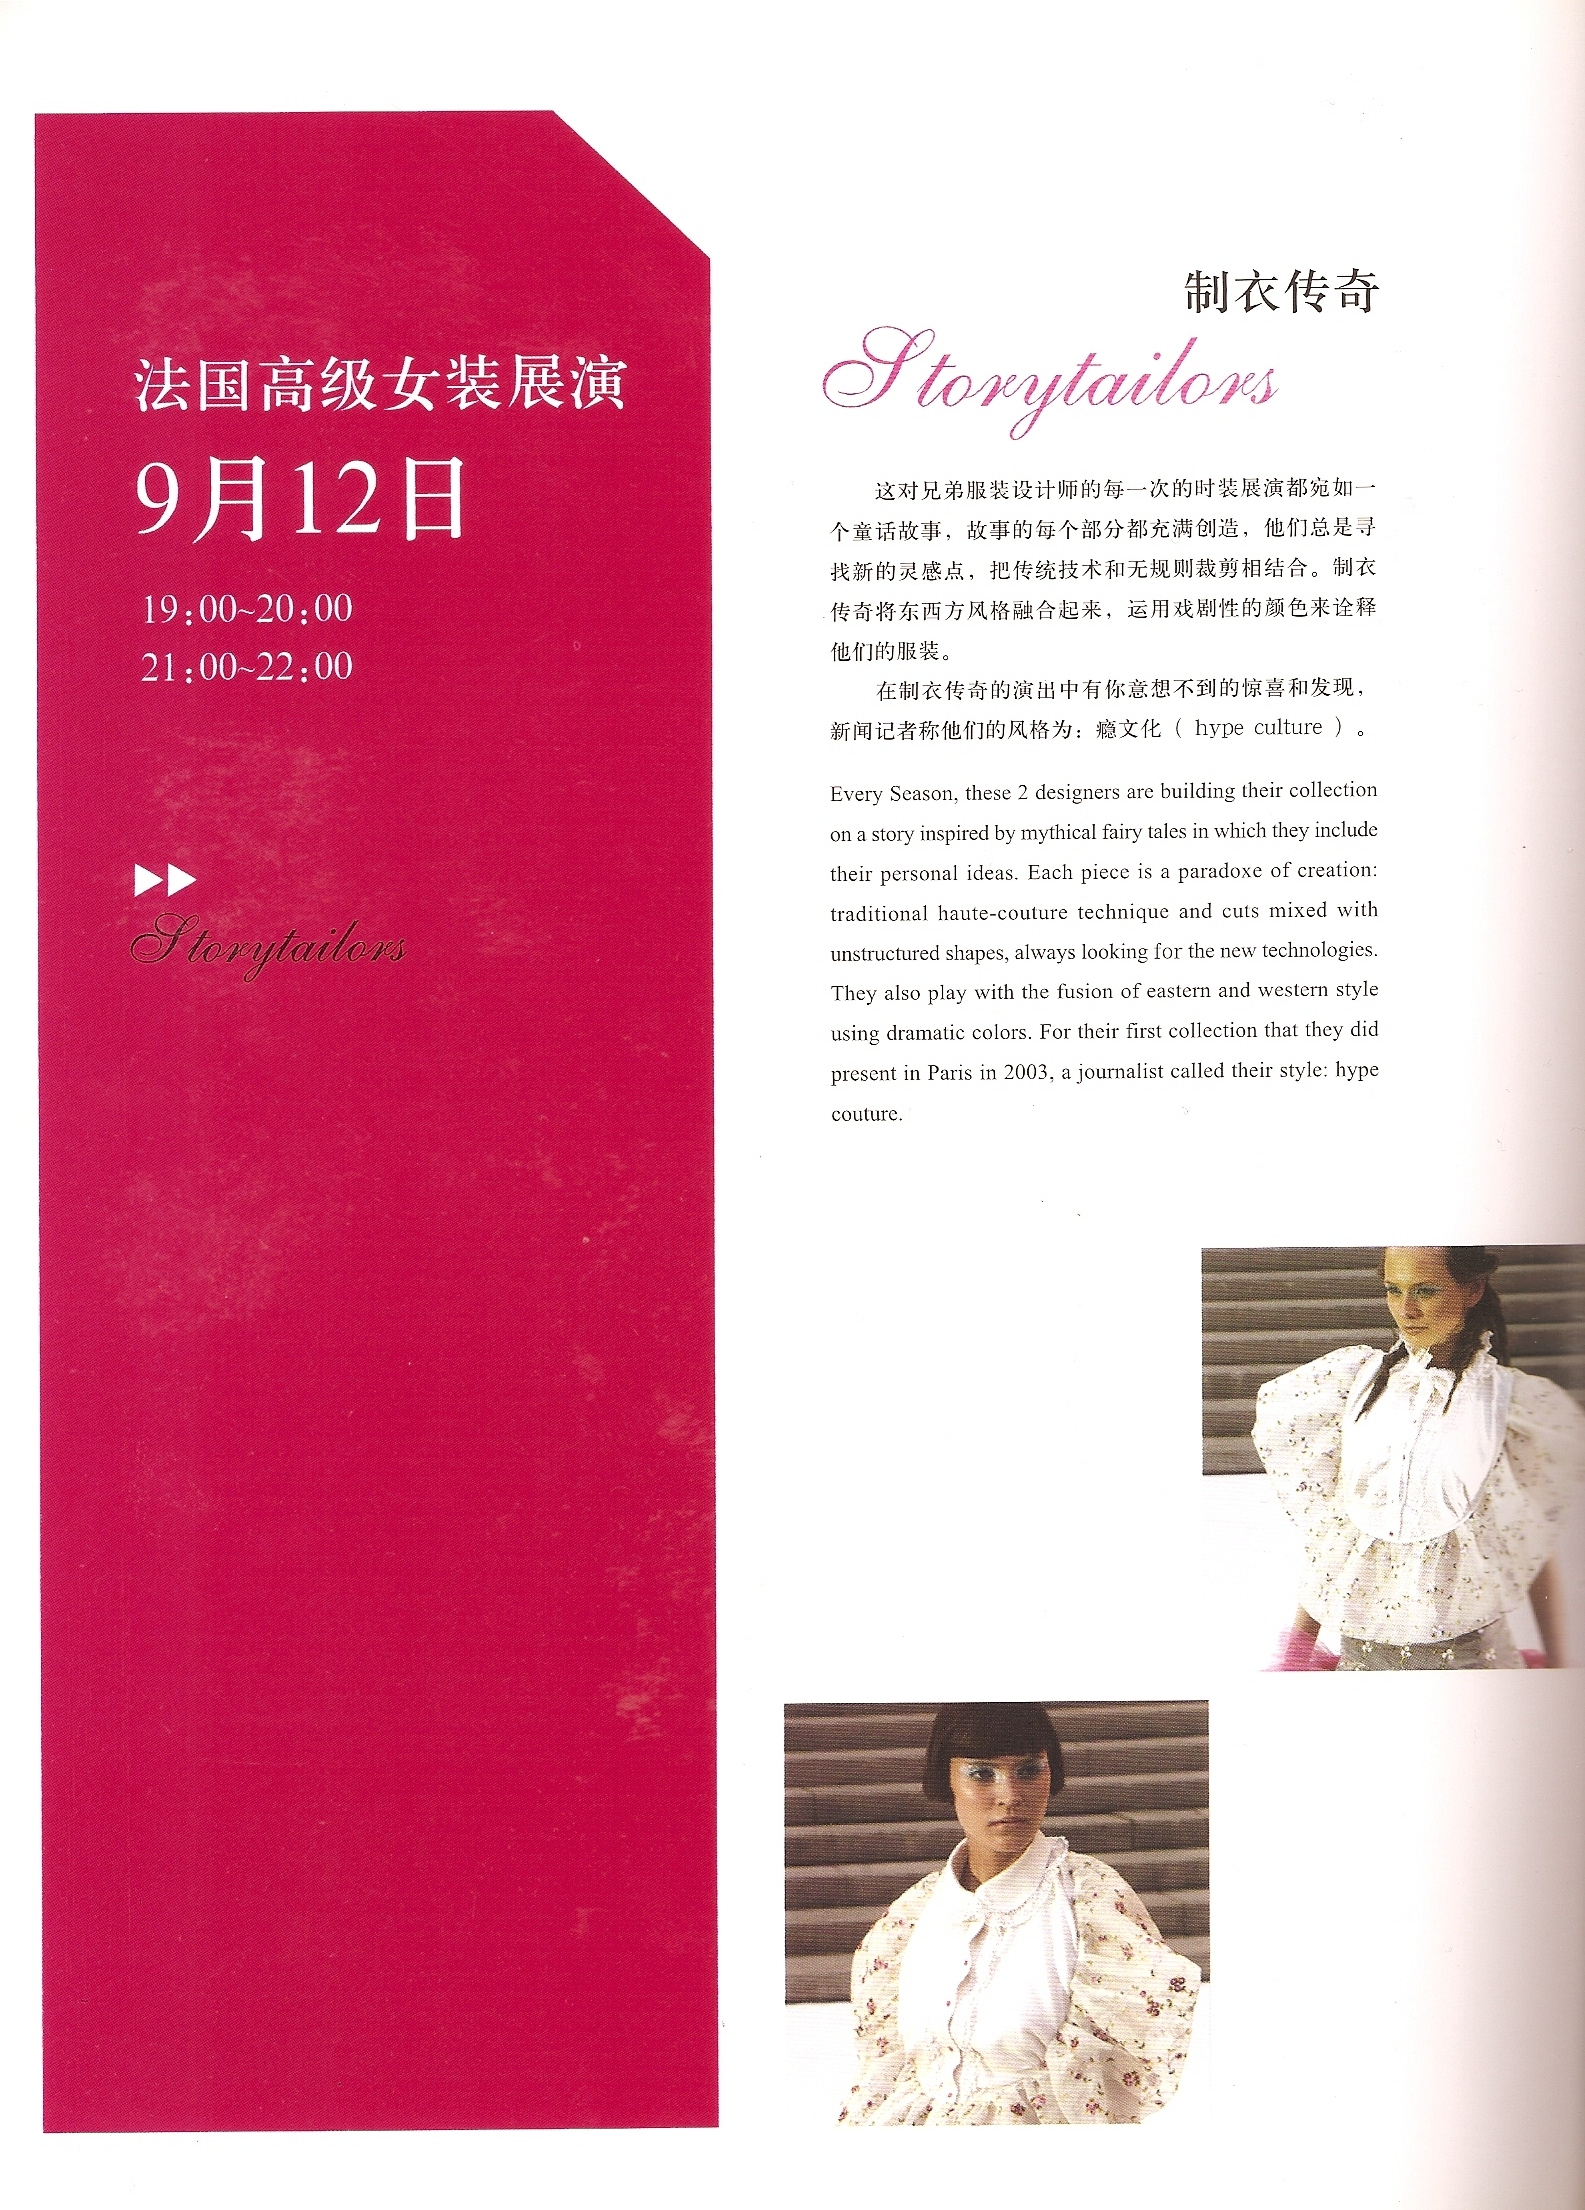 Dalian-world-master´s-haute-couture-collection-pag1-2006